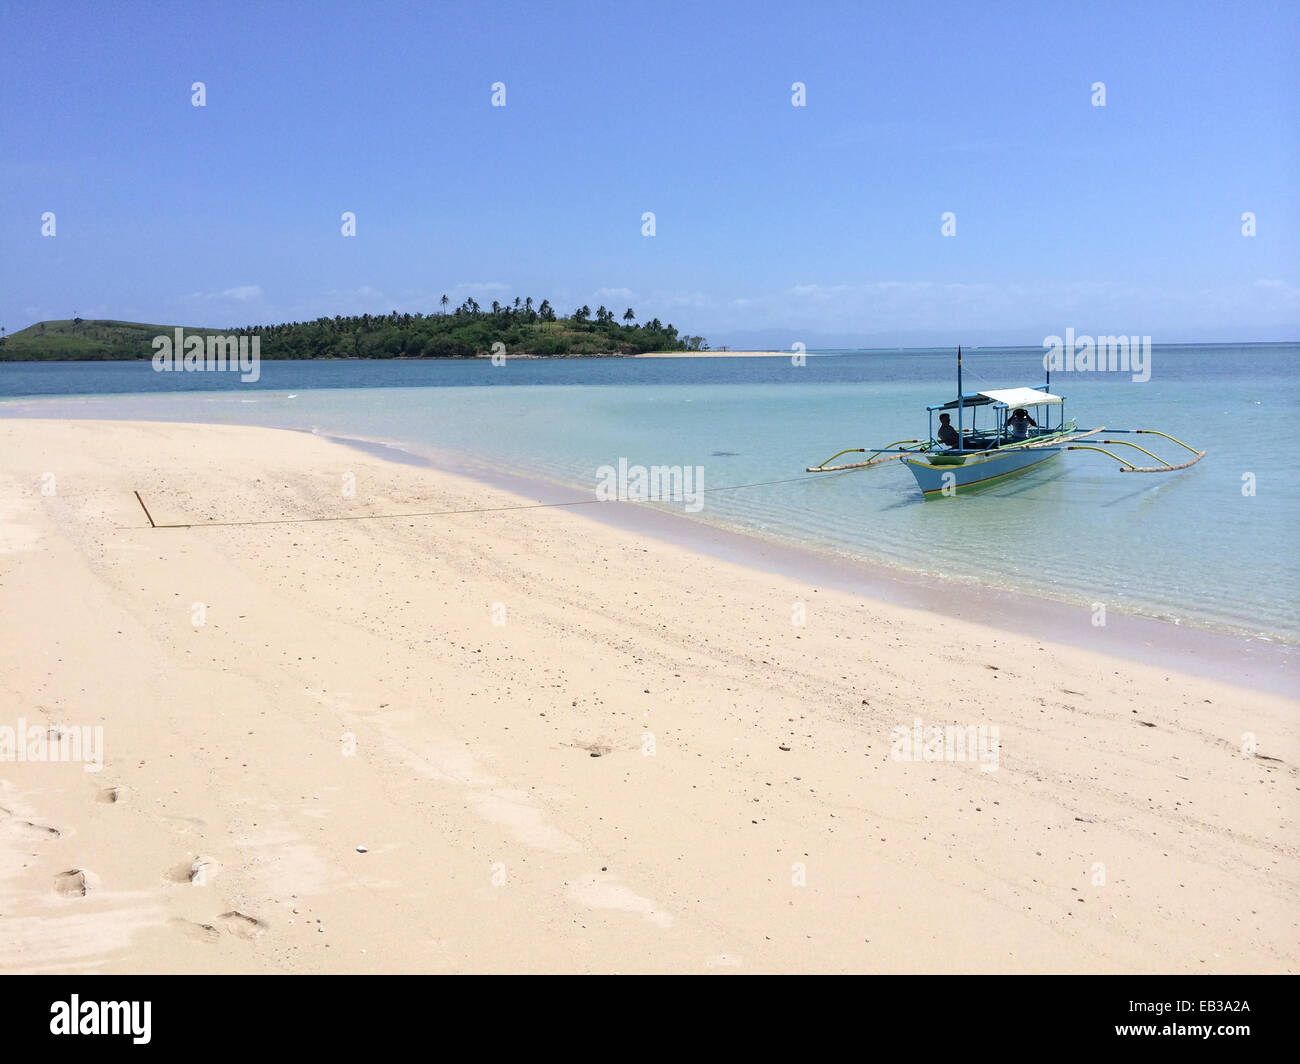 Philippines, Bicol Region, Camarines Sur, Caramoan, Bangka idling in shallow waters, tied to pole stuck into beach - Stock Image